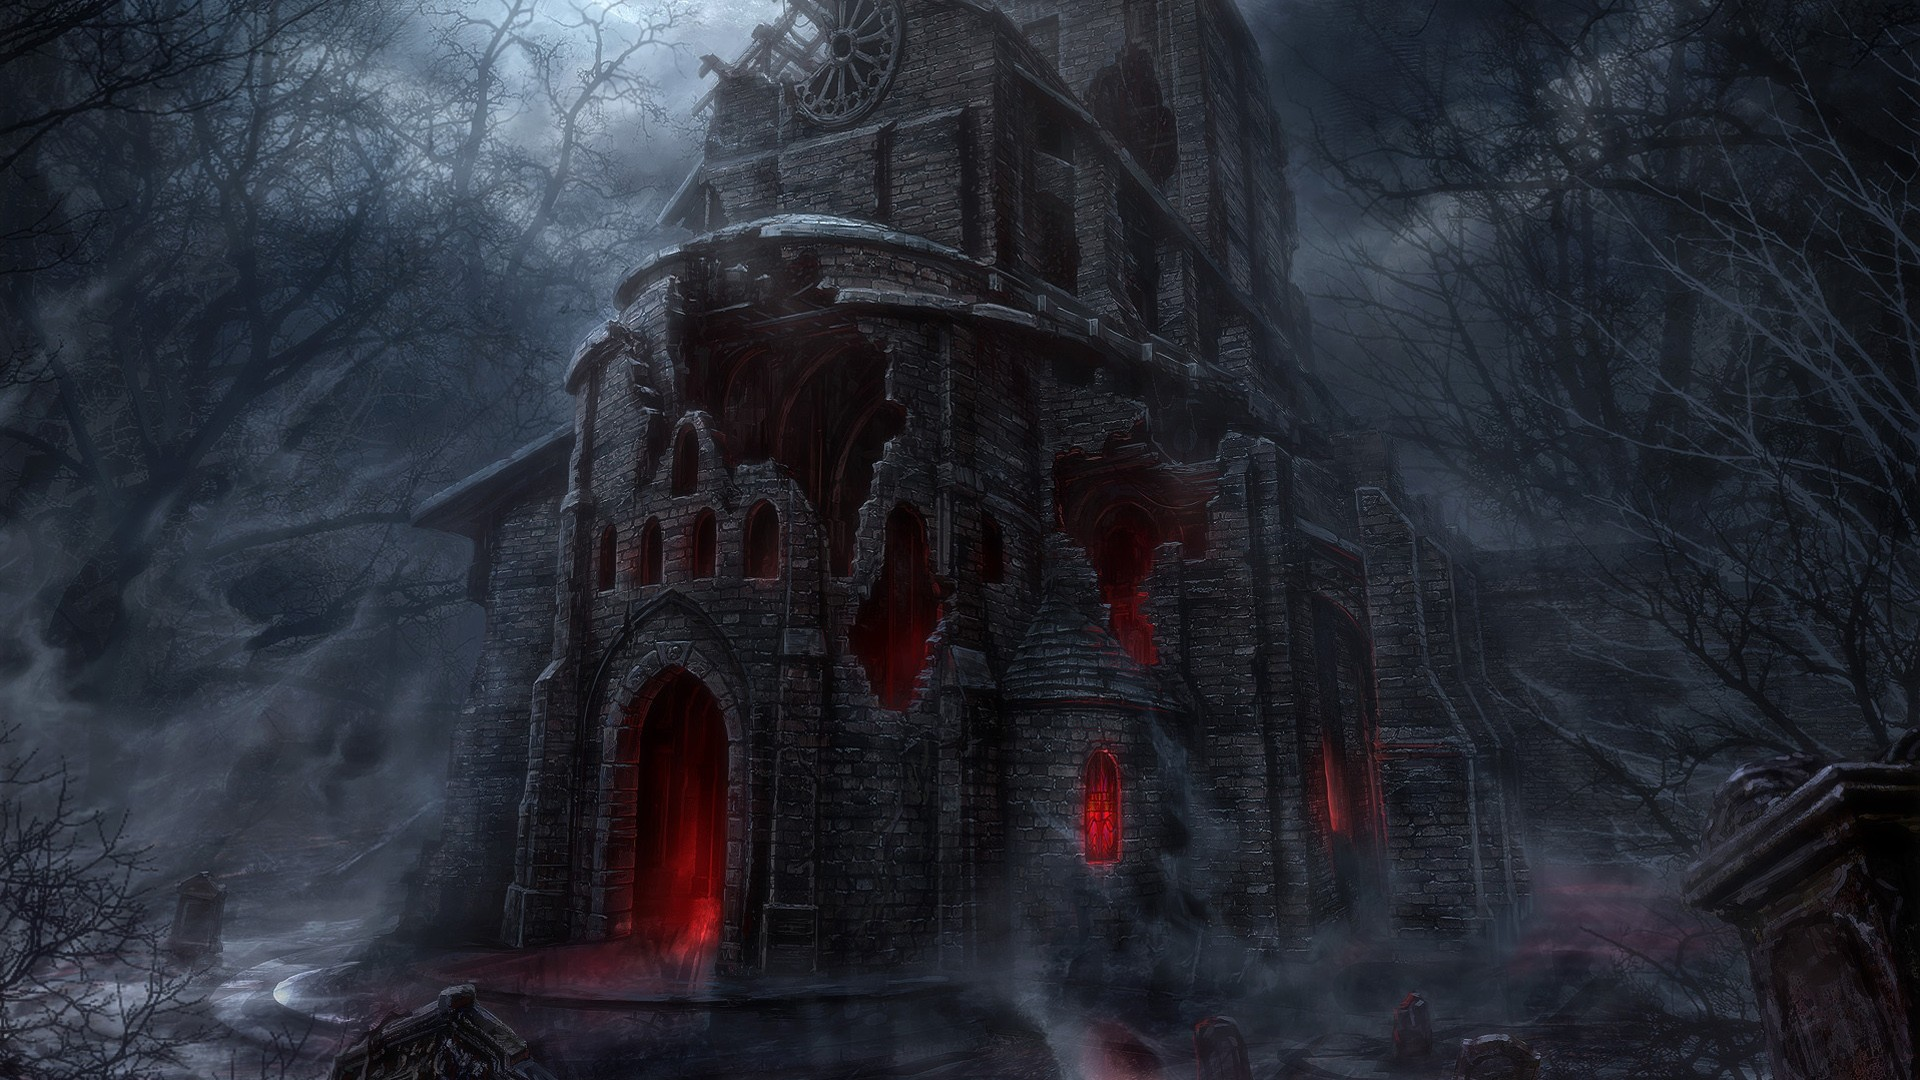 Gothic Wallpaper Download Free Cool Full Hd Backgrounds For